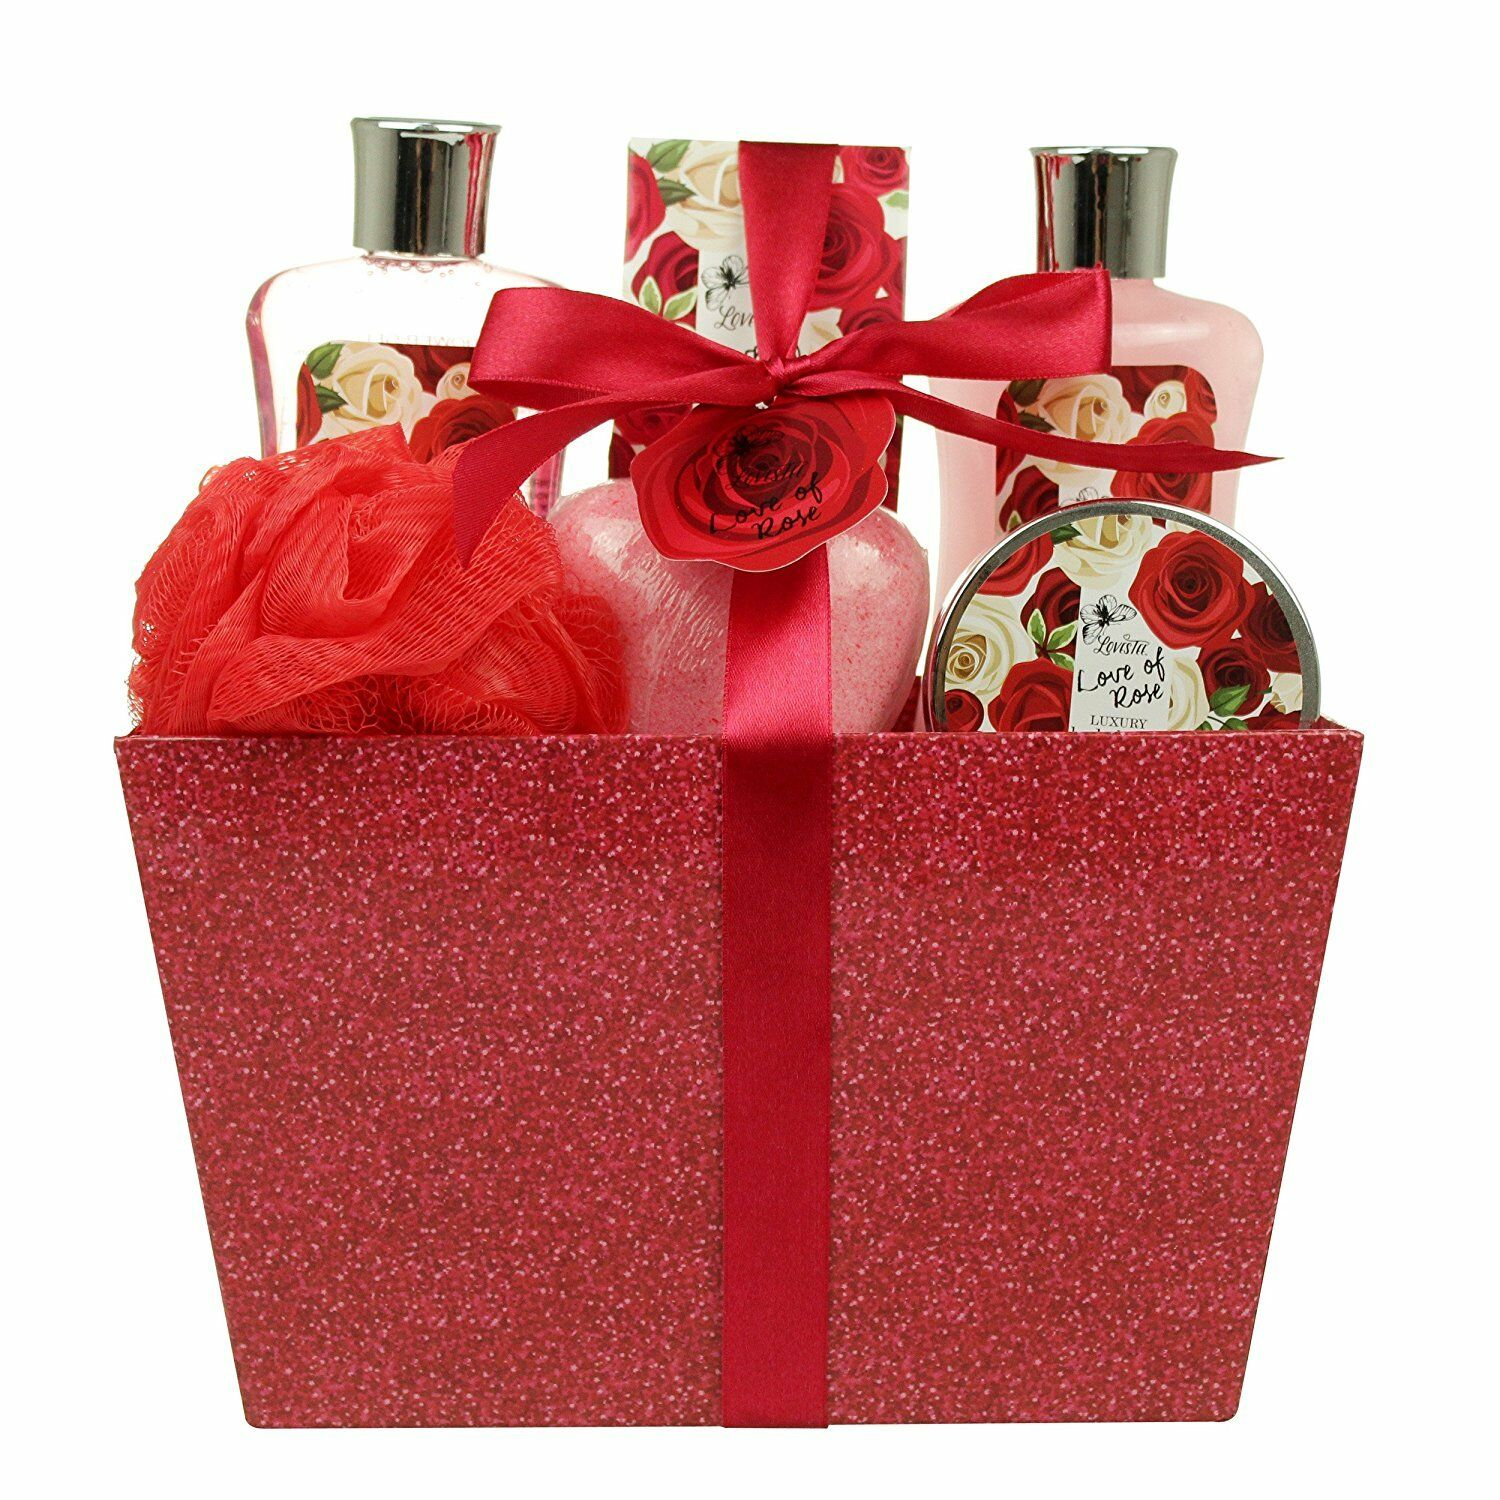 Details About Birthday Valentines Gift For Her Spa Basket Bath Body Love Of Rose Luxury Set